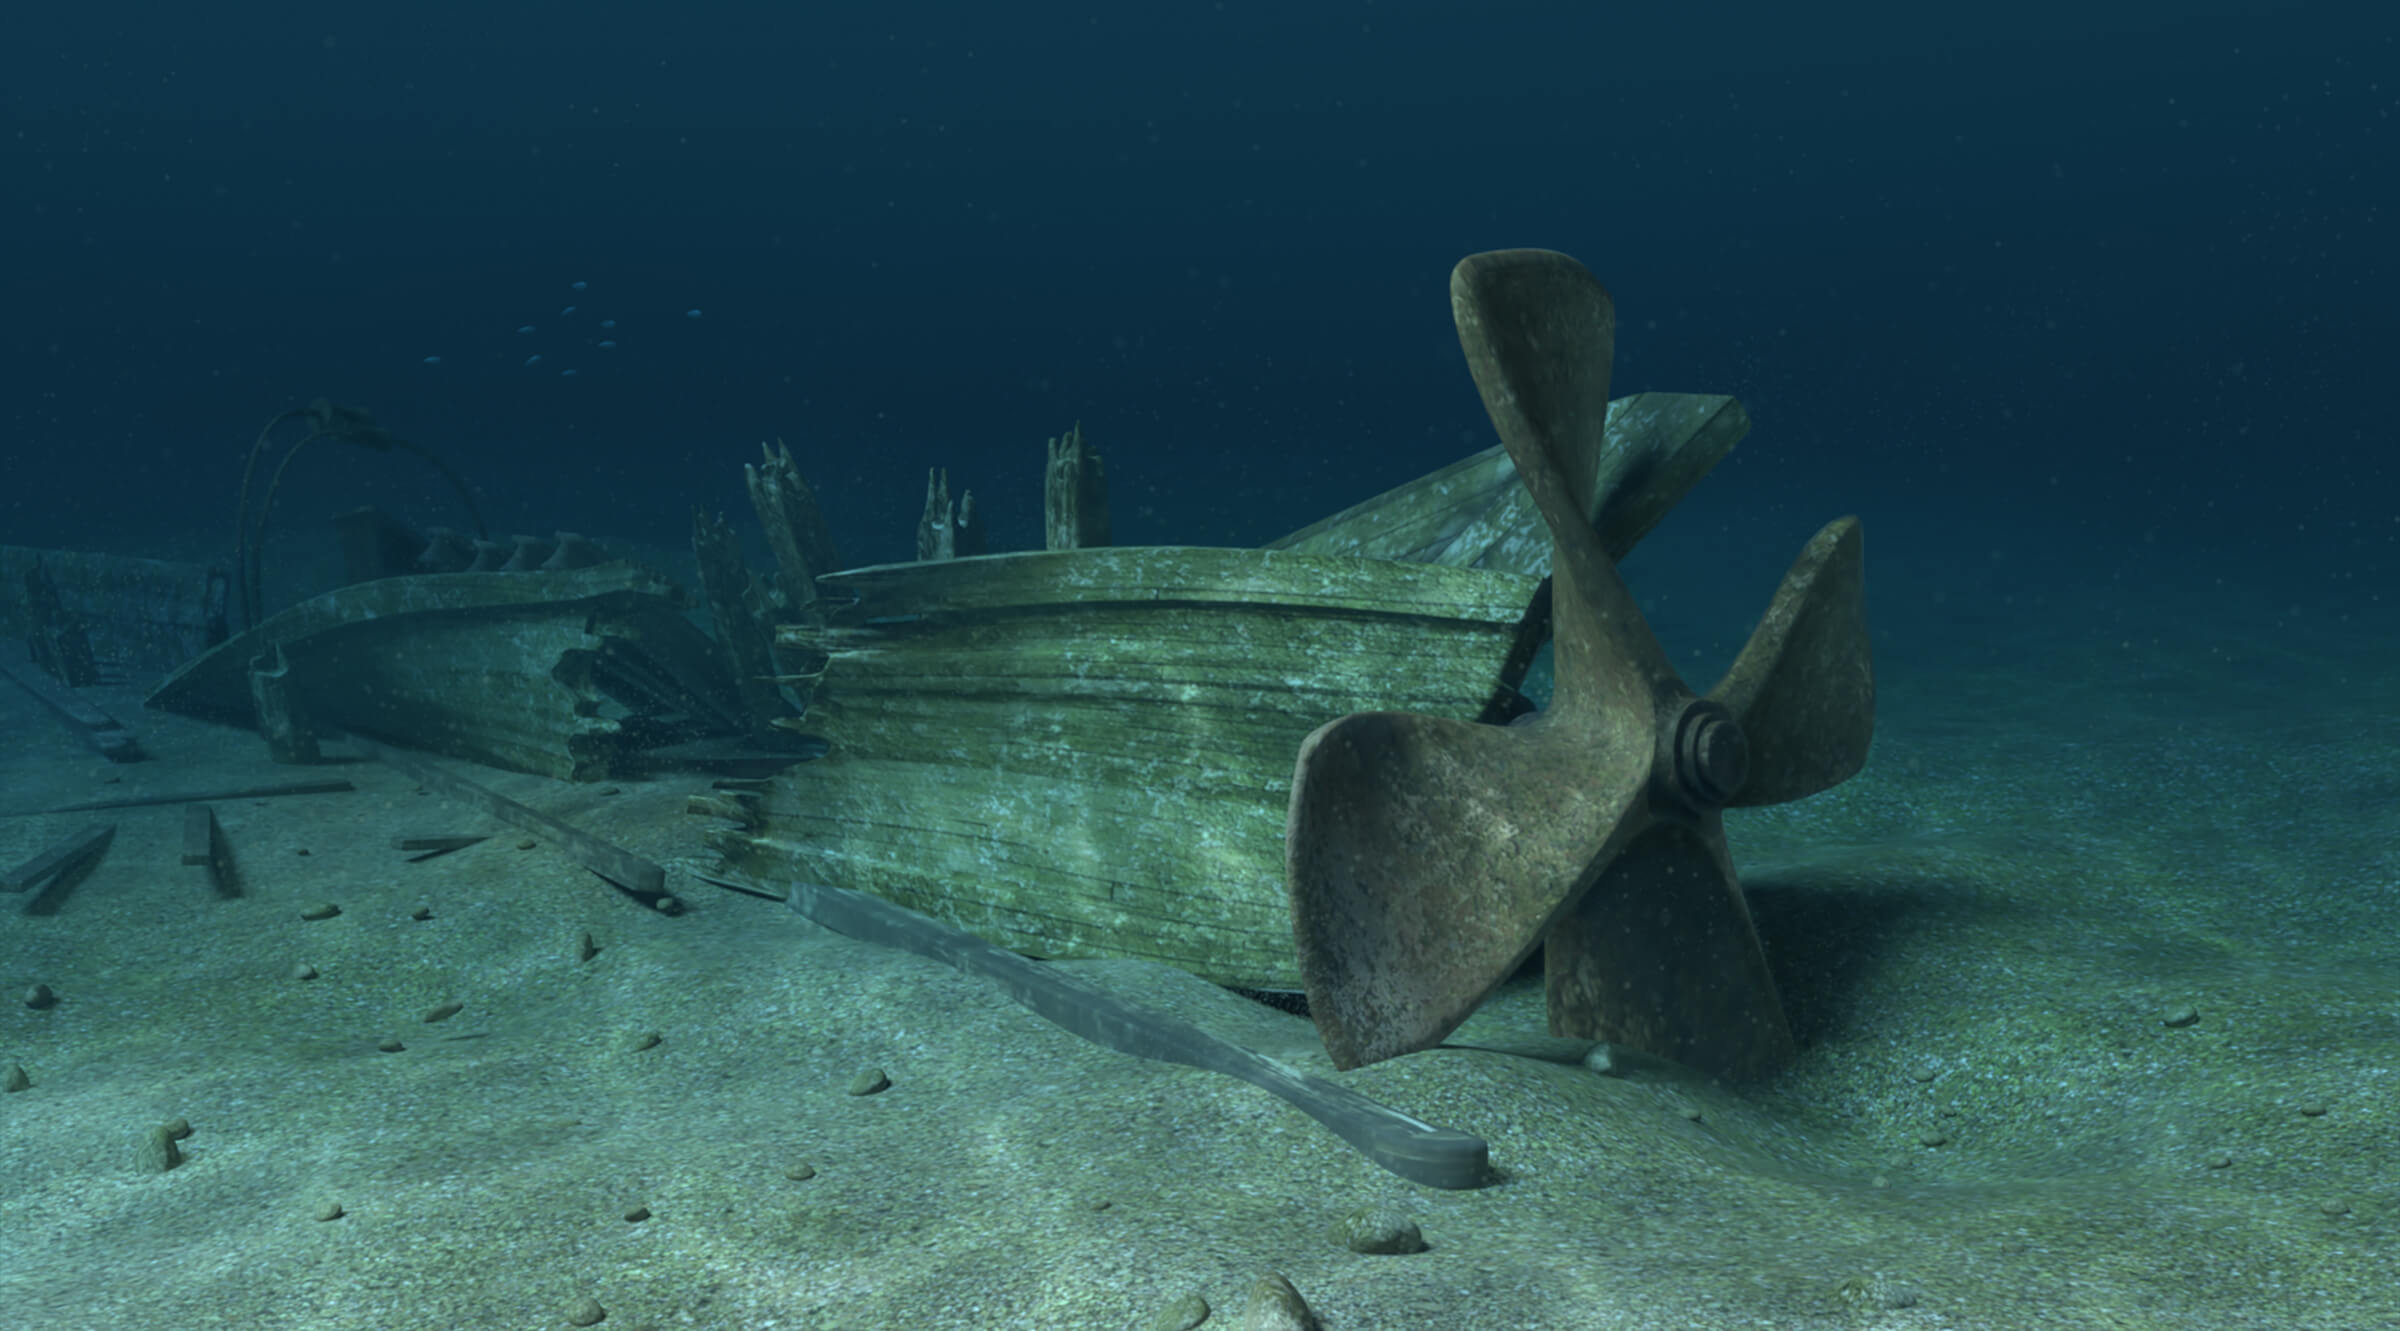 computer-generated 3D underwater environment featuring a sunken ship with a large propeller